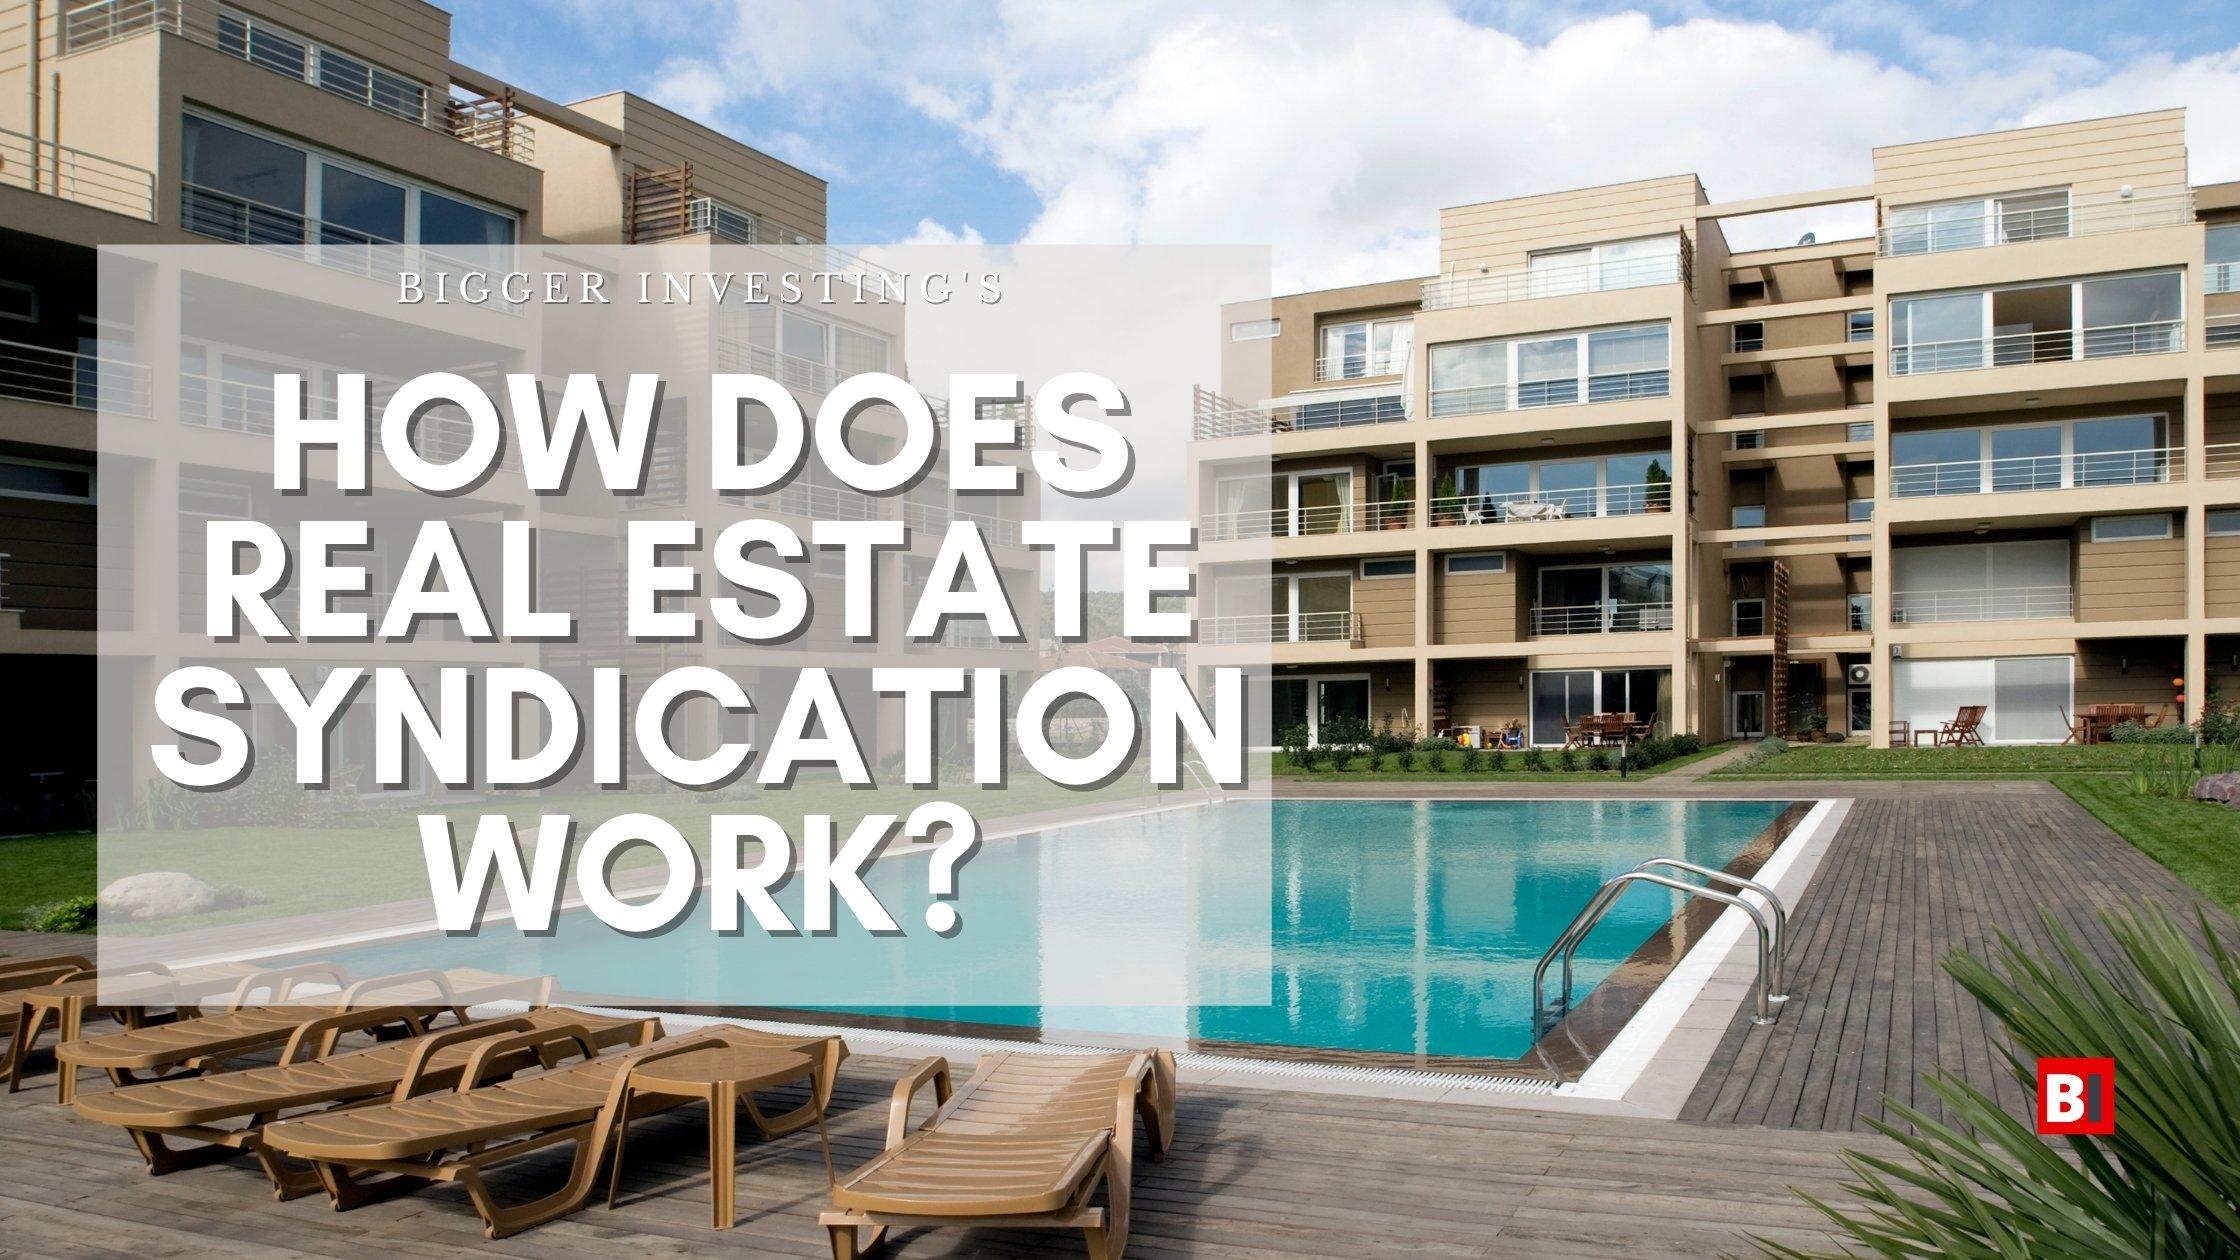 How Does Real Estate Syndication Work?